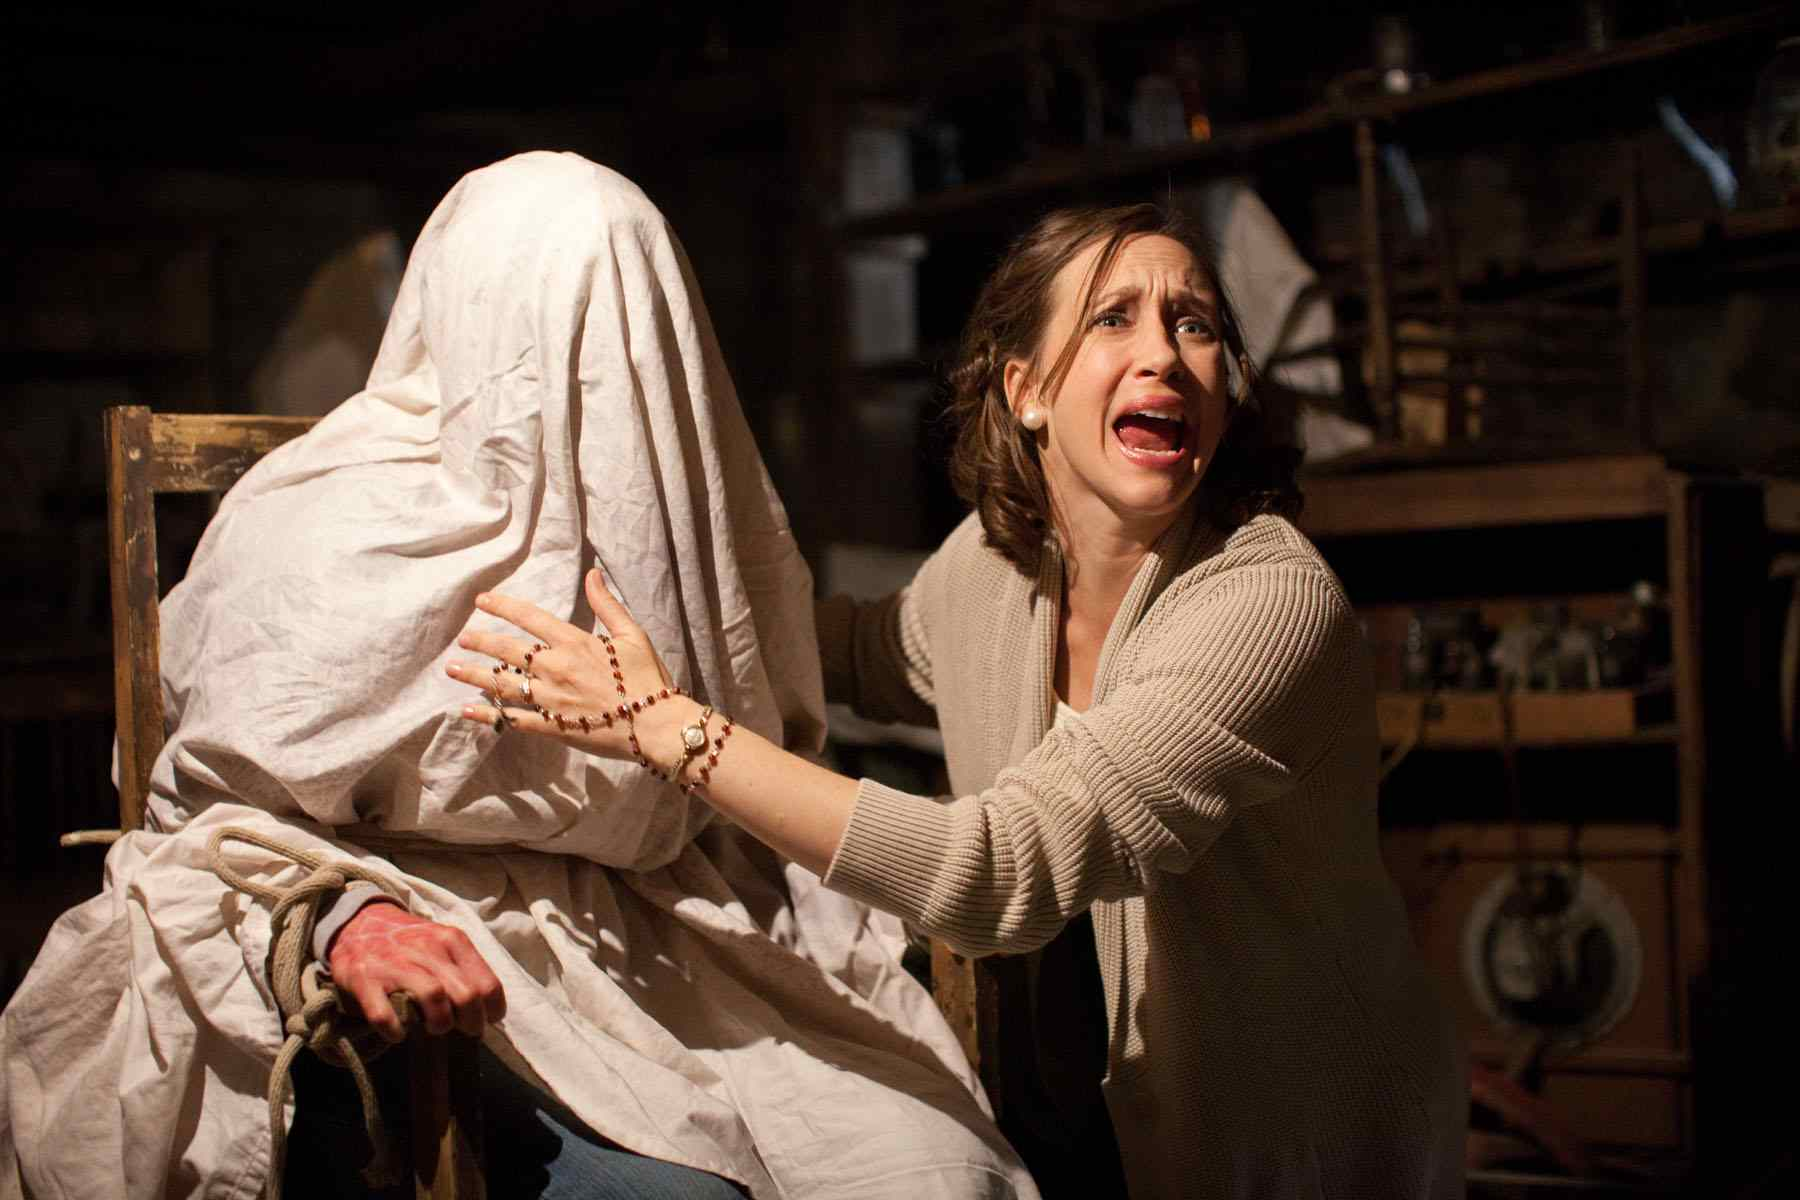 The movie The Conjuring starring Patrick Wilson and Vera Farmiga, directed by James Wan.